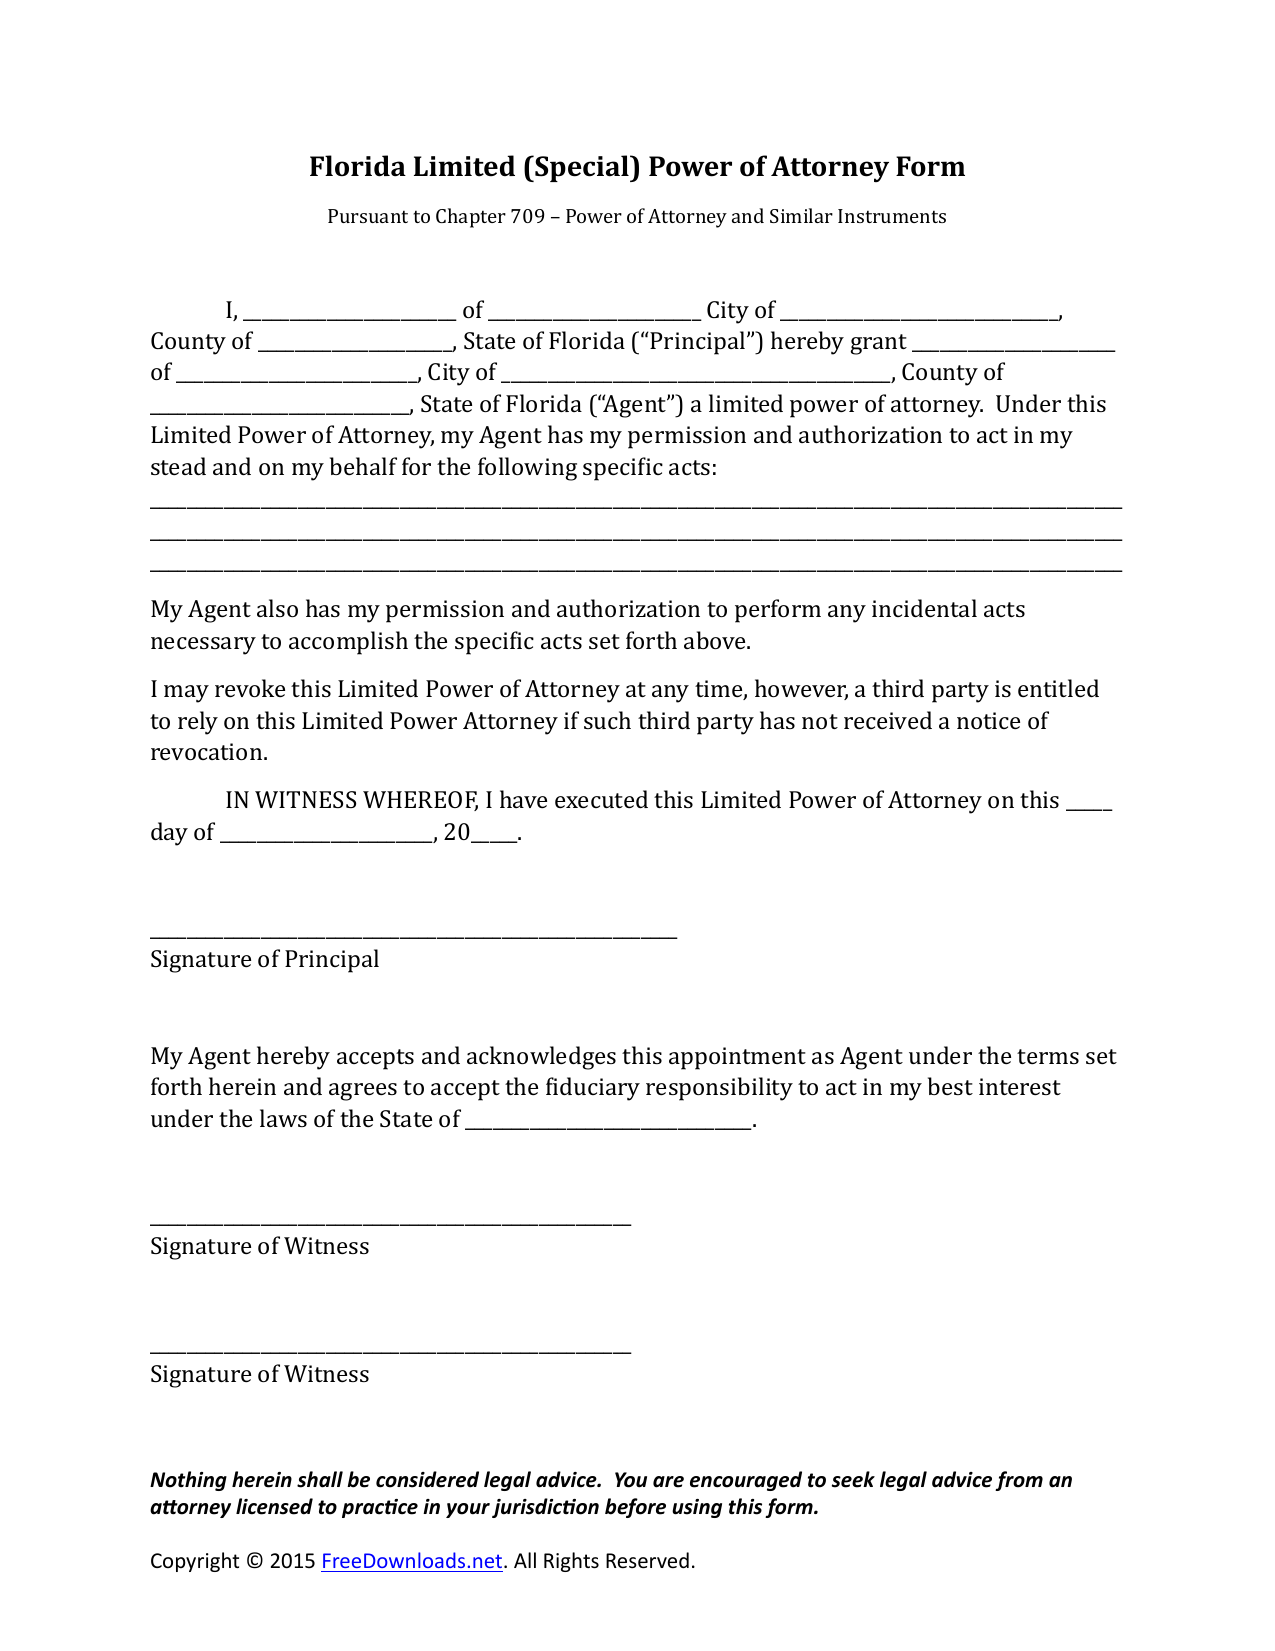 Download Florida Special (Limited) Power of Attorney Form | PDF ...